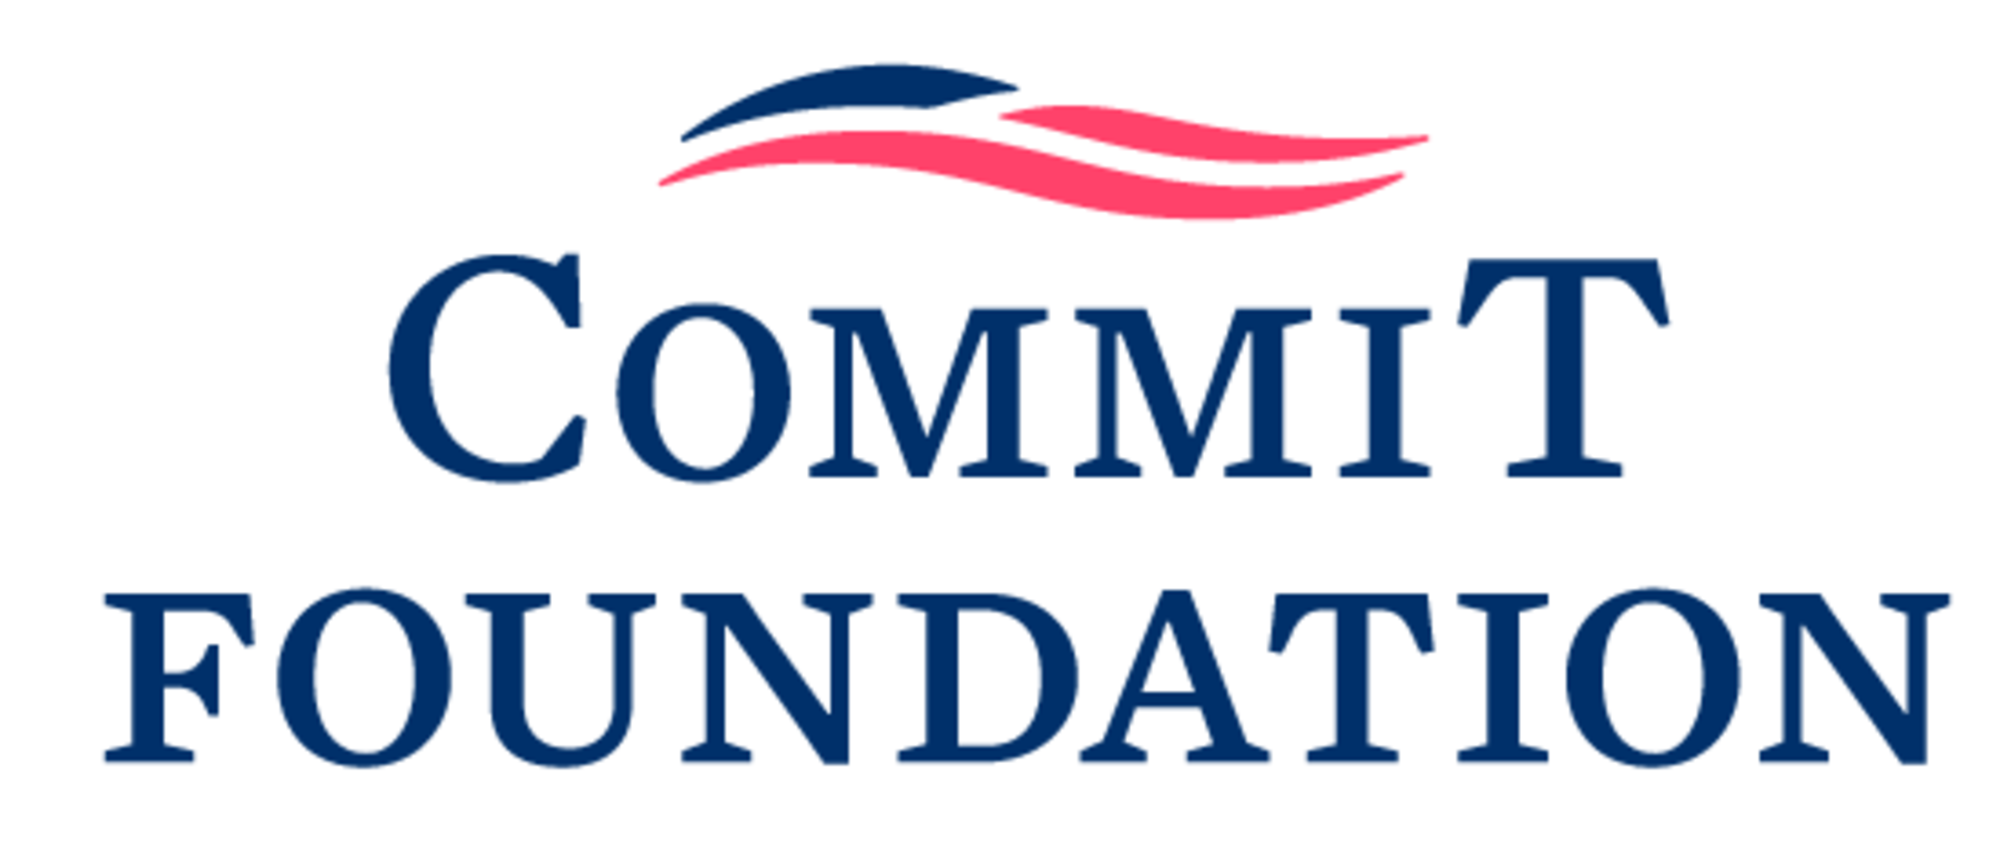 The COMMIT Foundation Logo 1AUG18